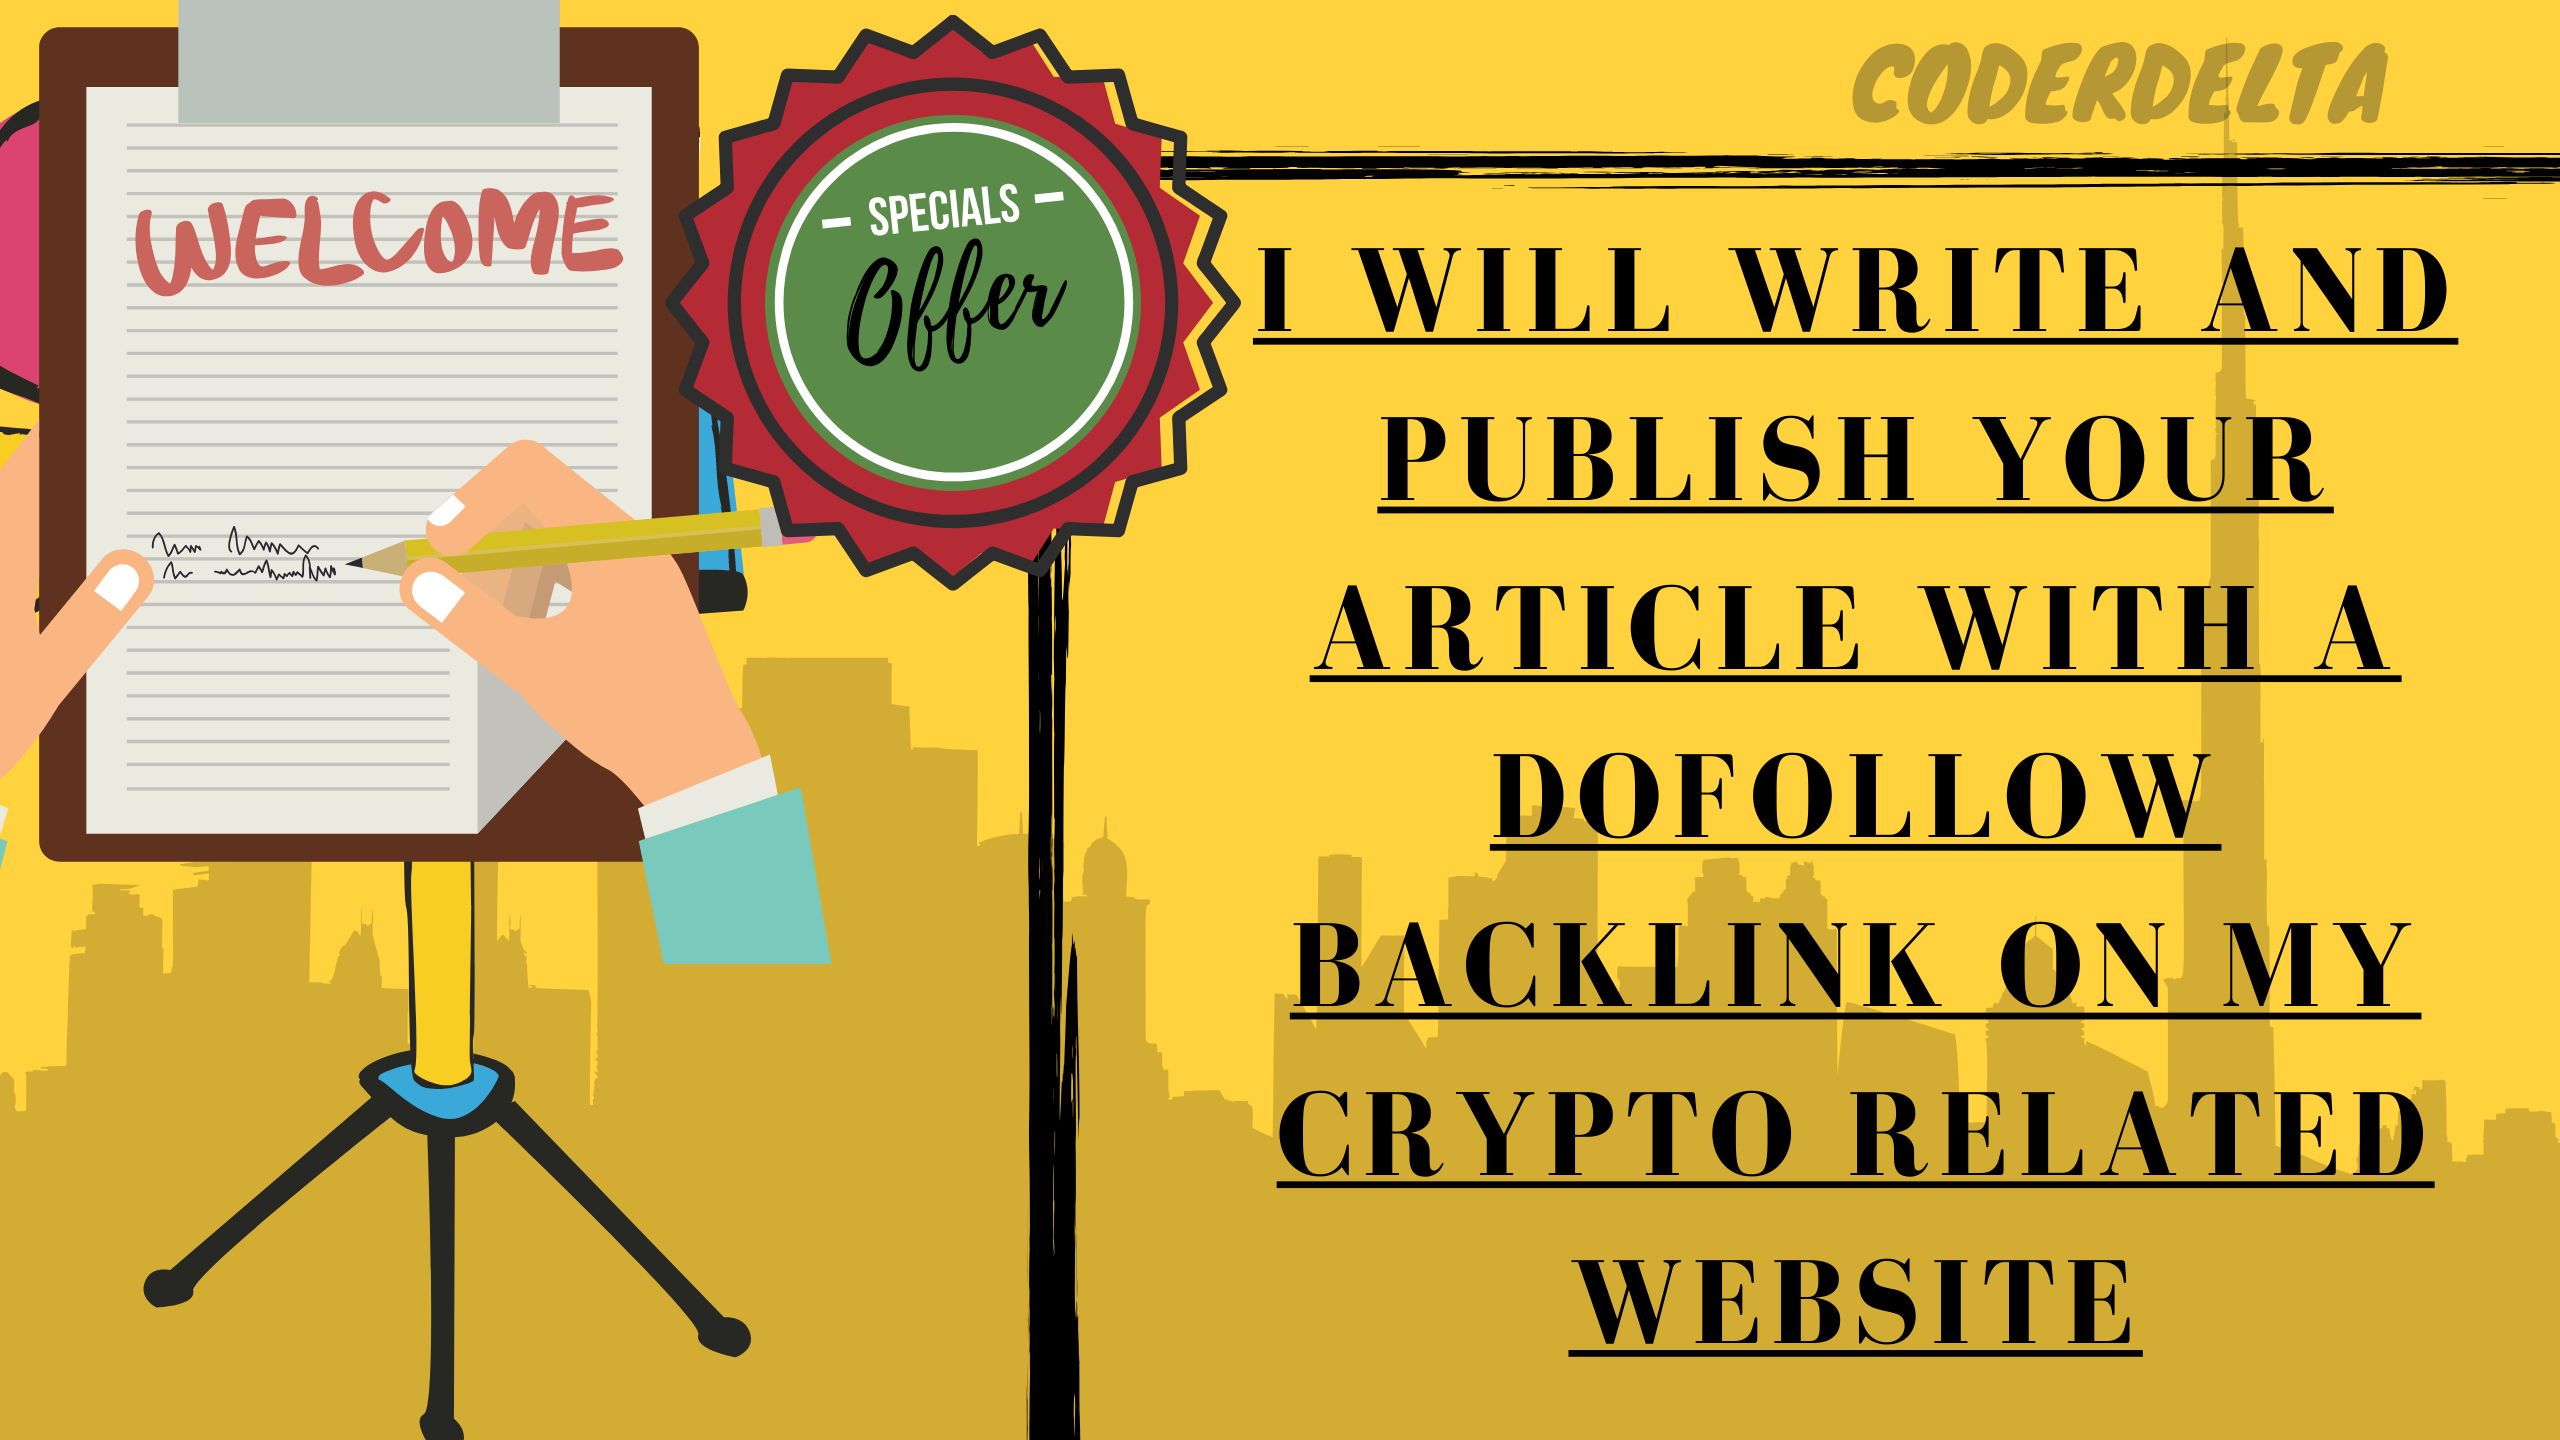 I Will Write and Publish your article With a DoFollow Backlink on my CryptoCurrency Related Website